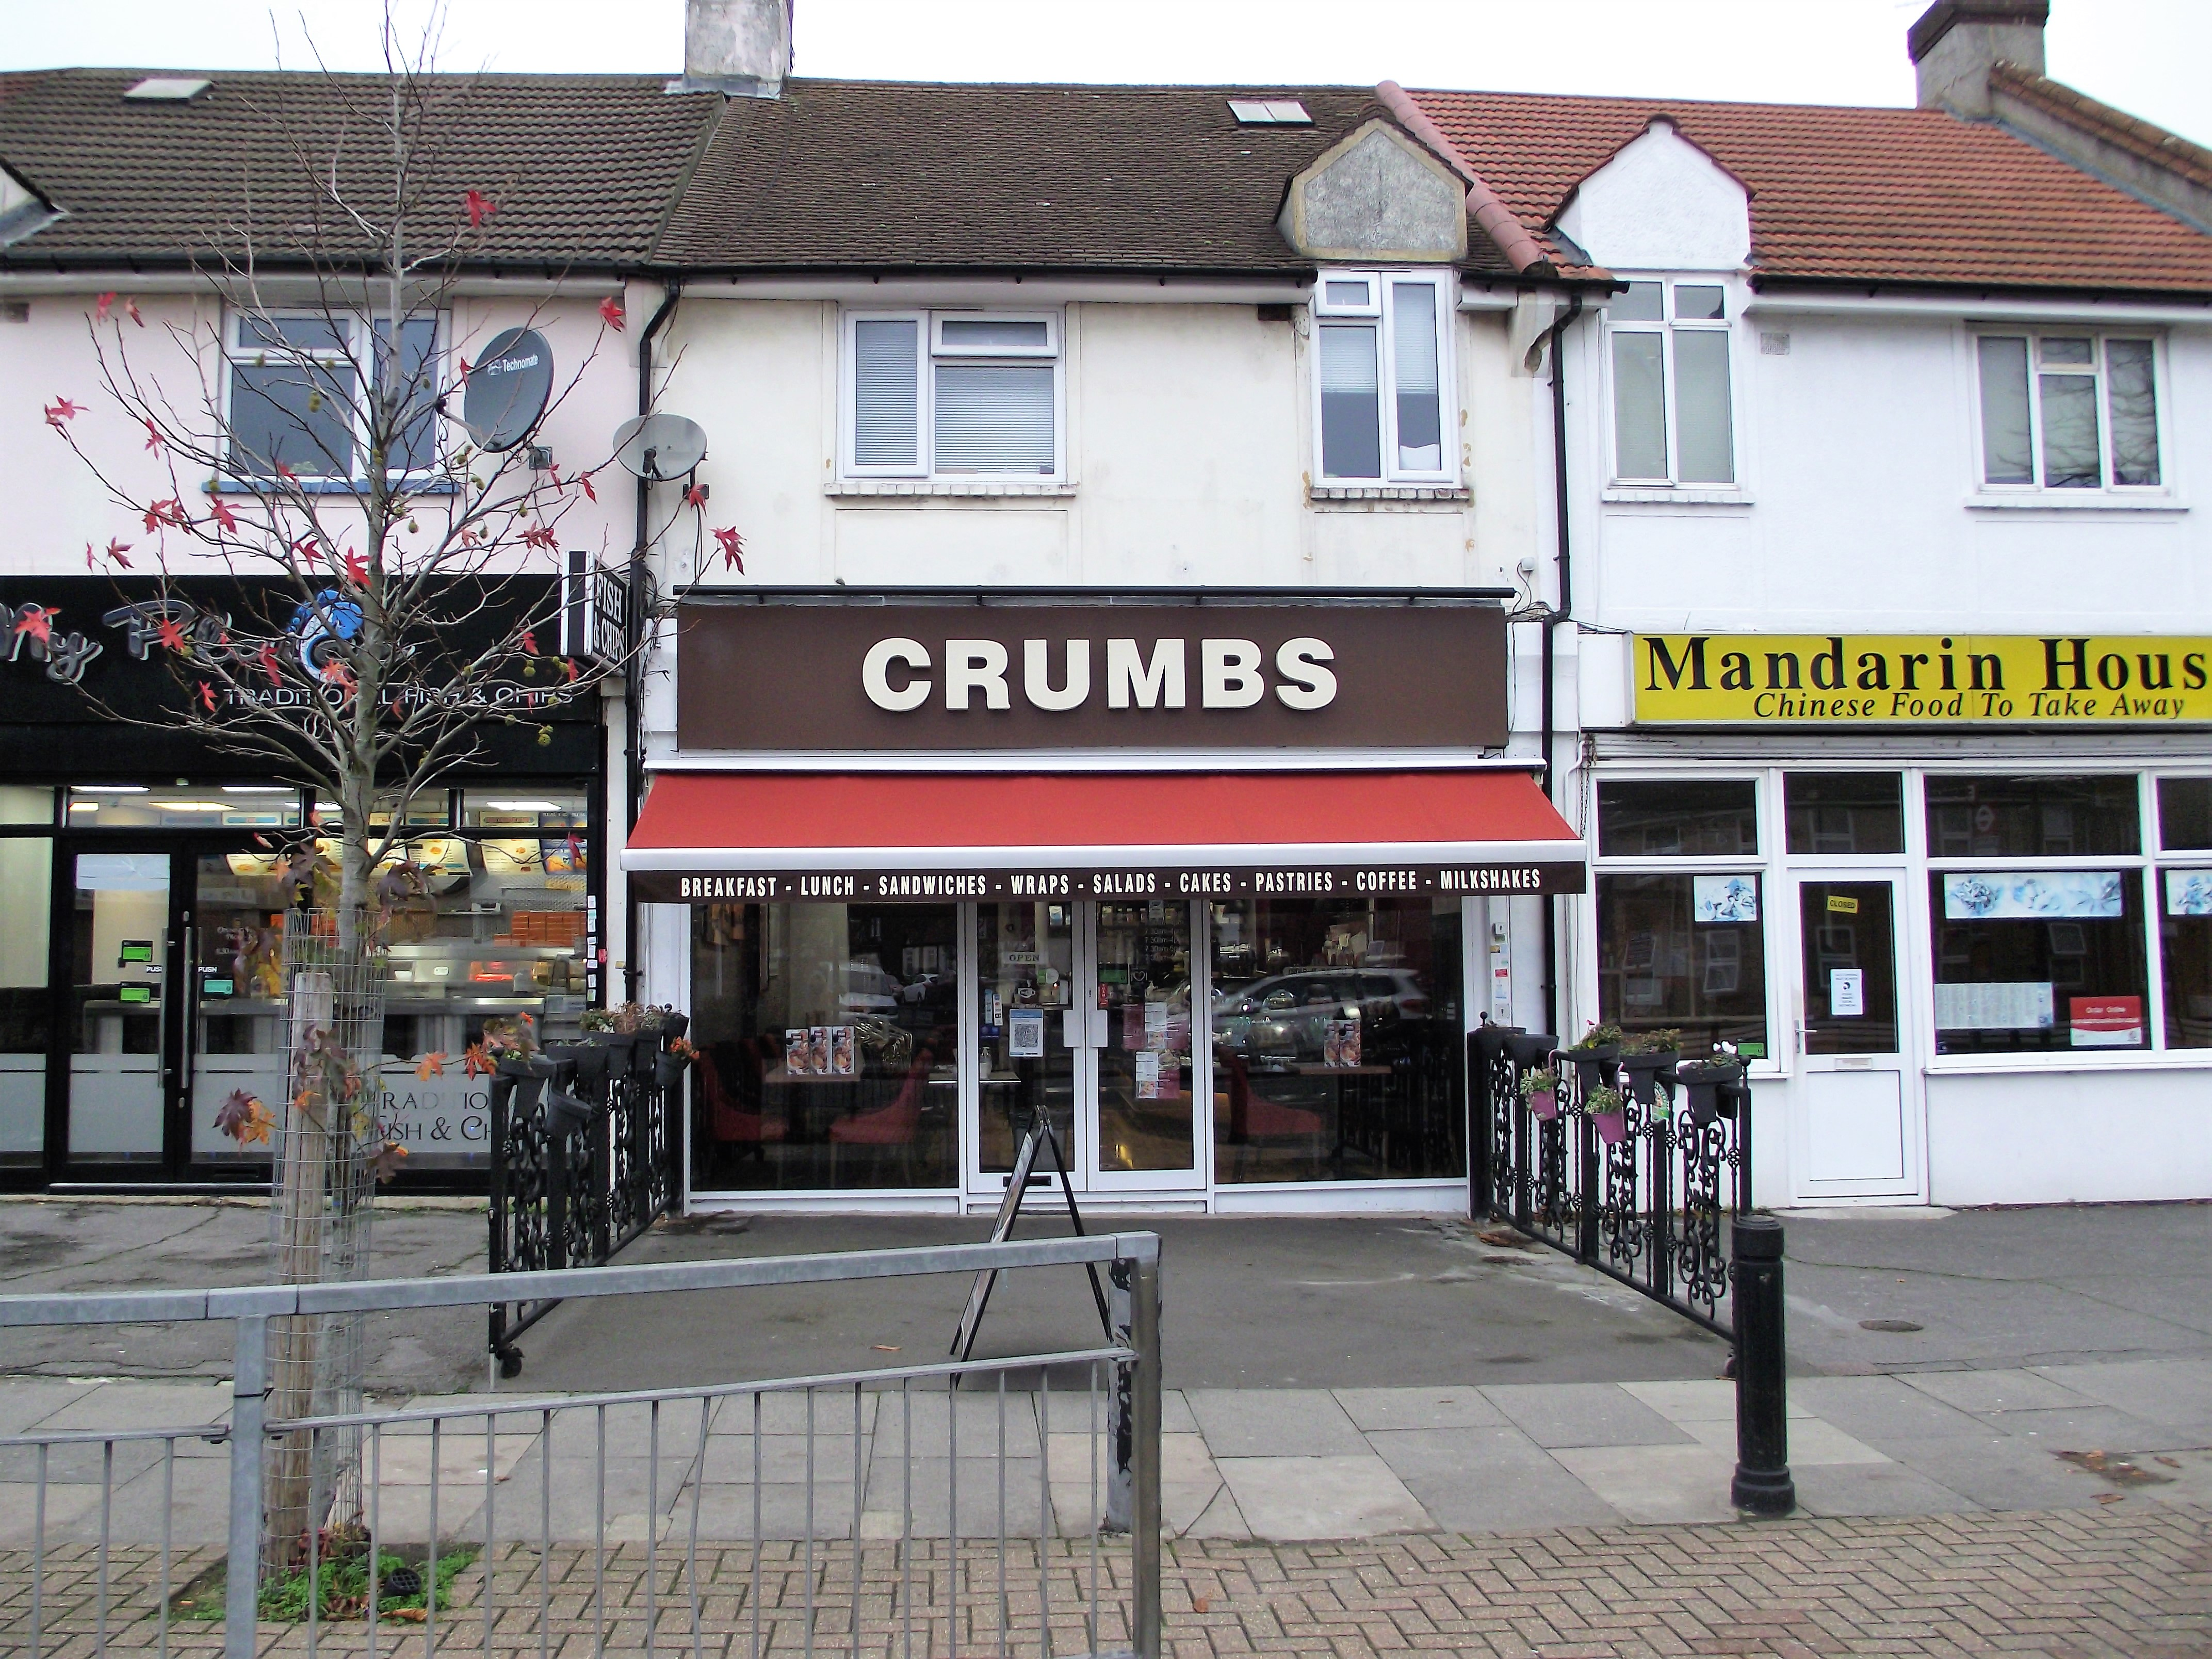 LEASE FOR SALE, Crumbs, Eltham, London. Ref.1747